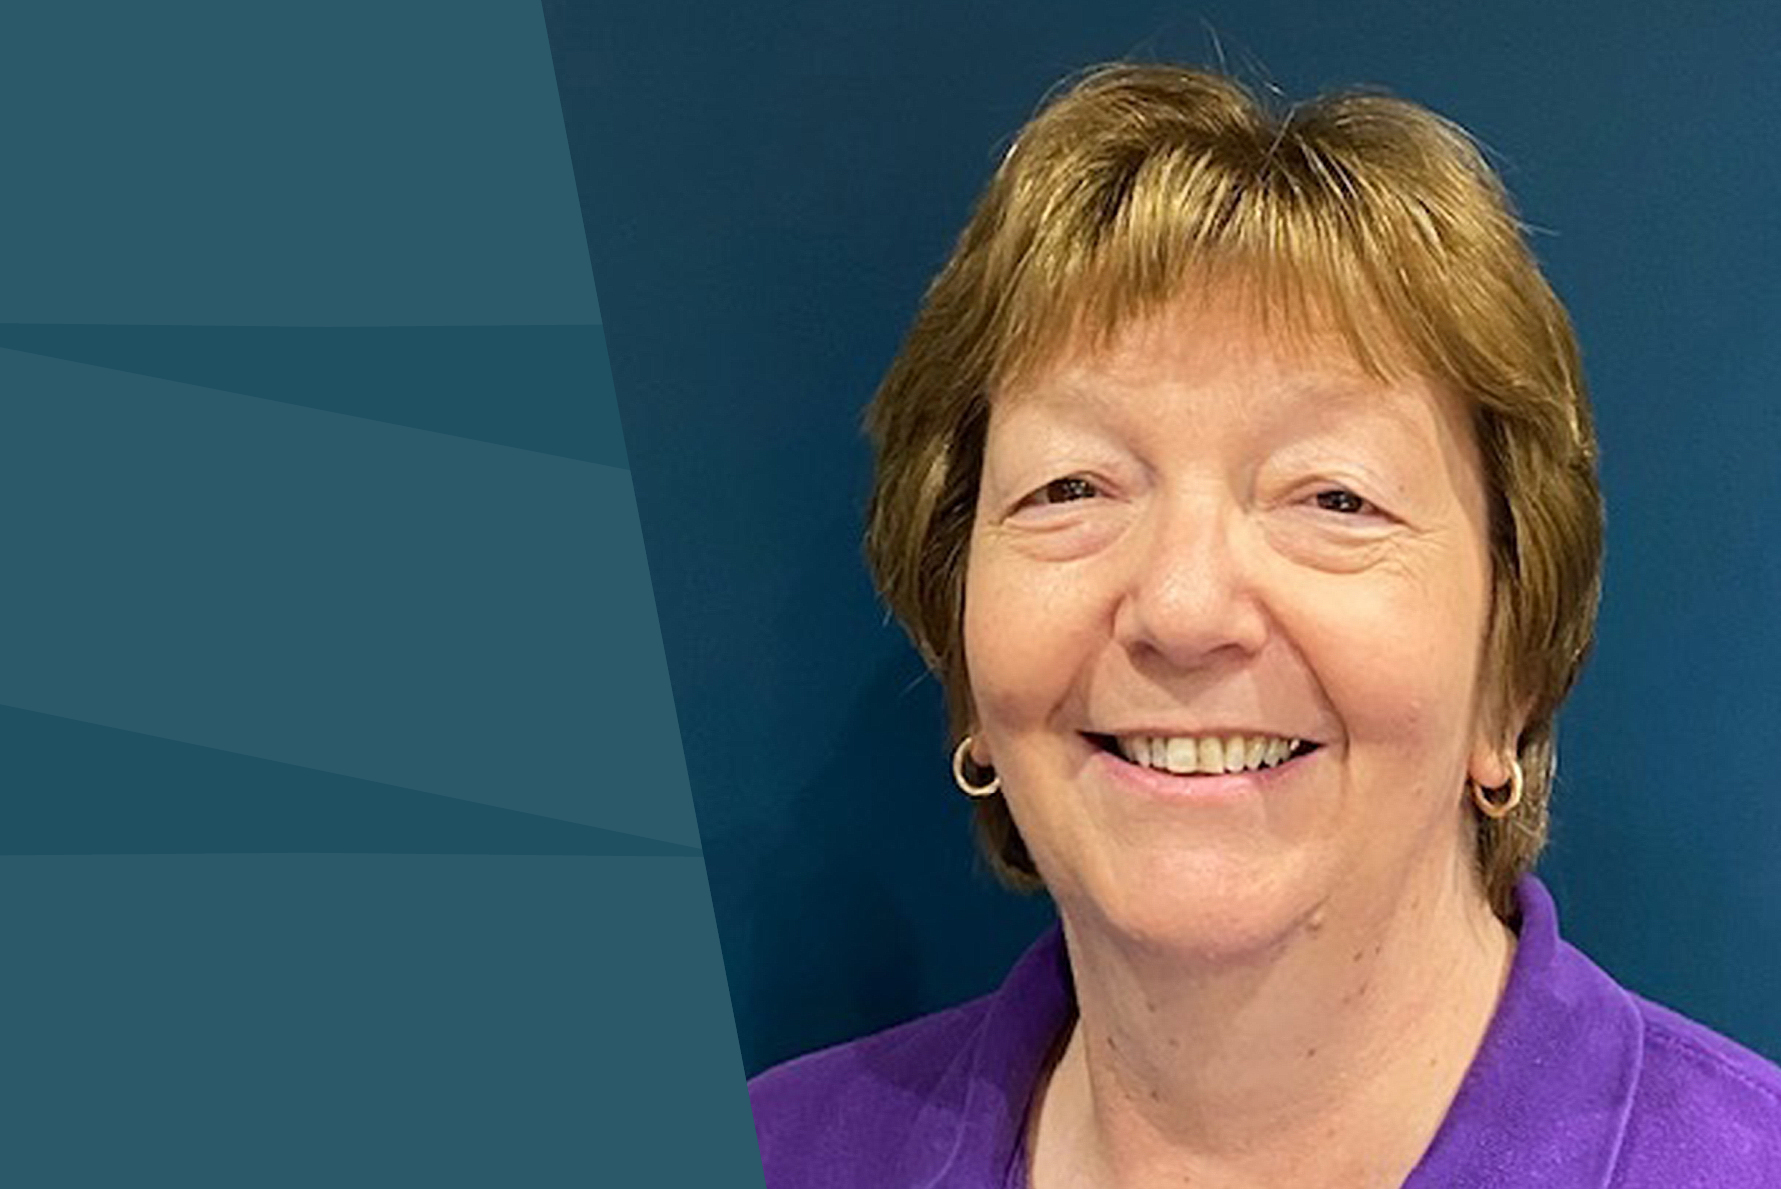 MEET THE TEAM: Introducing Gill Russon